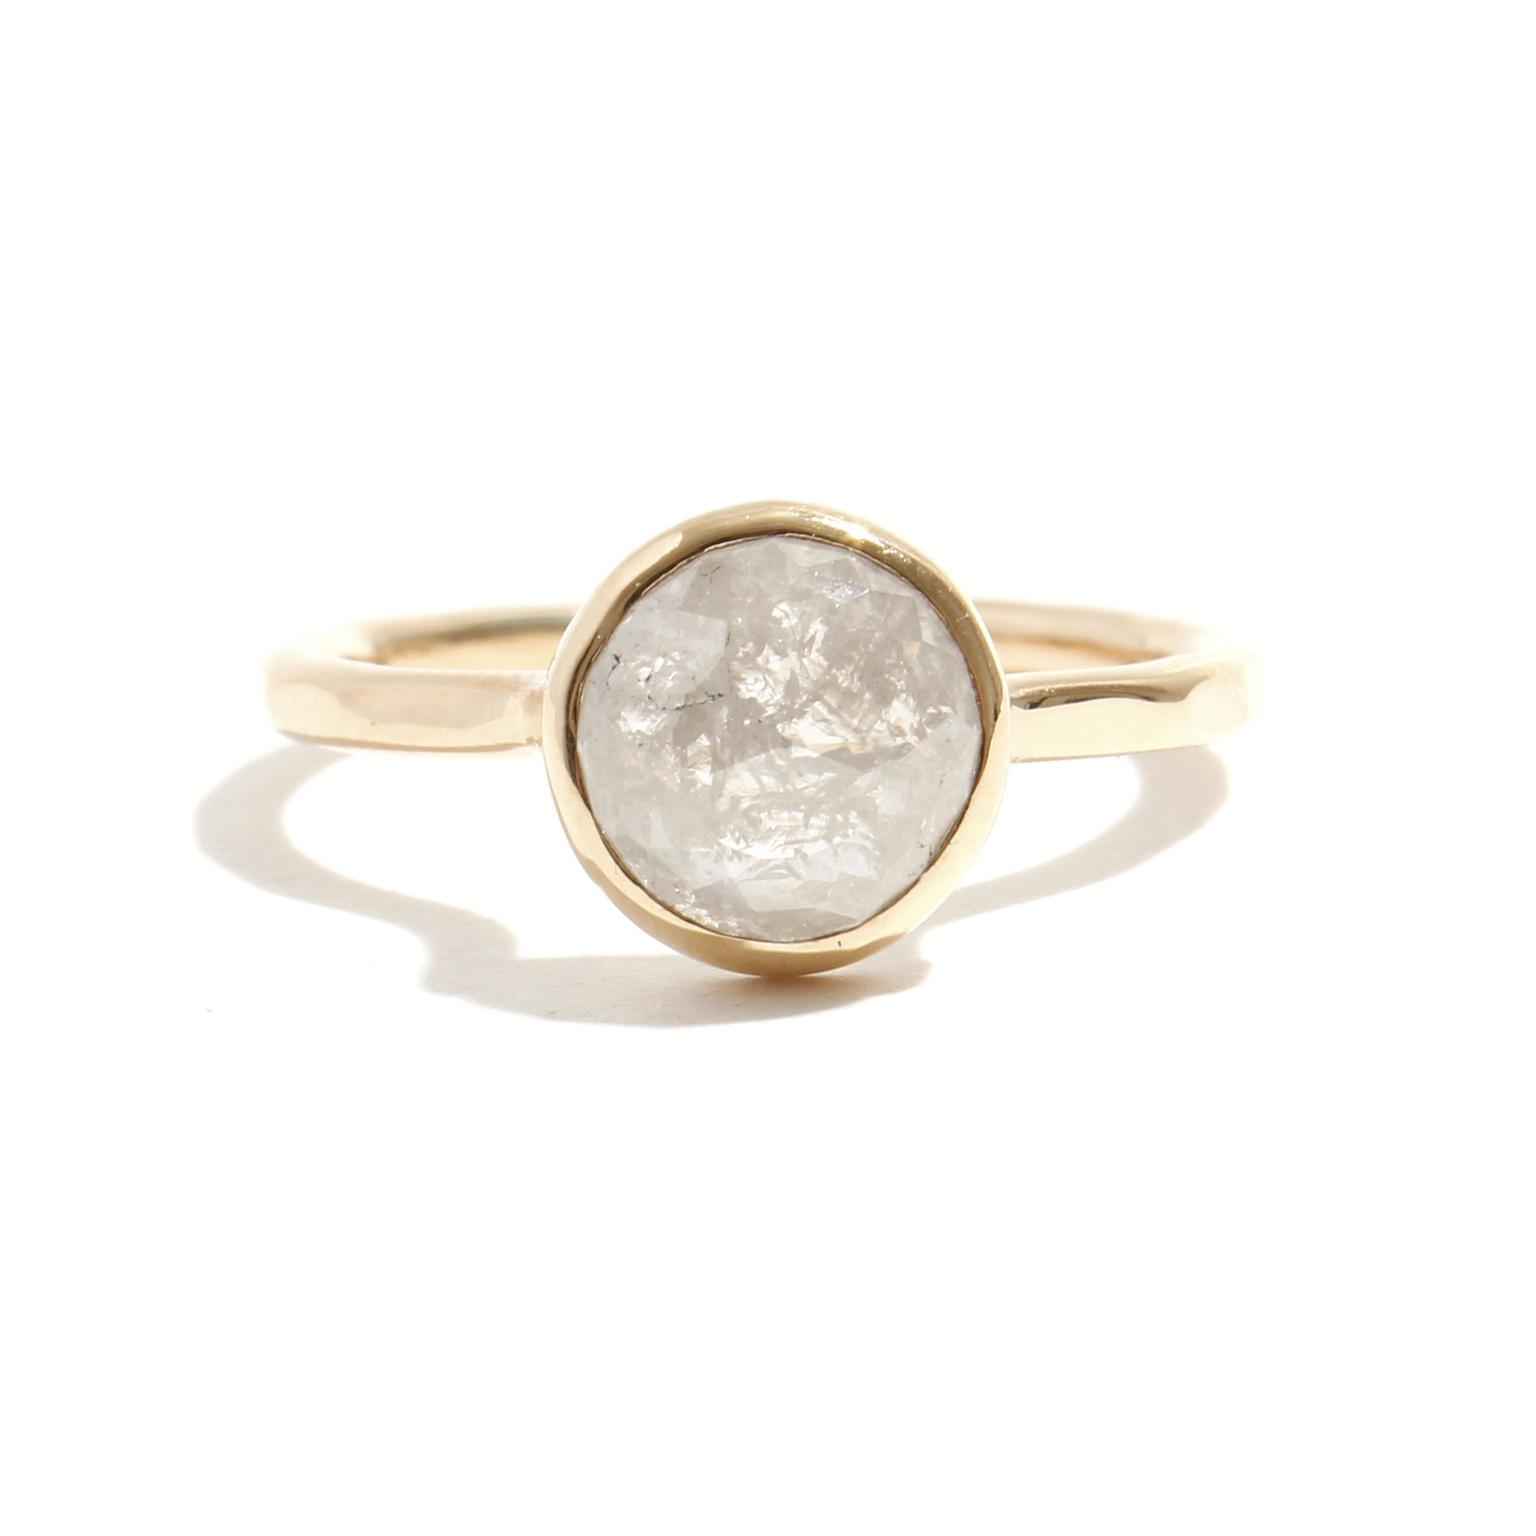 Melissa Joy Manning rose-cut diamond ring